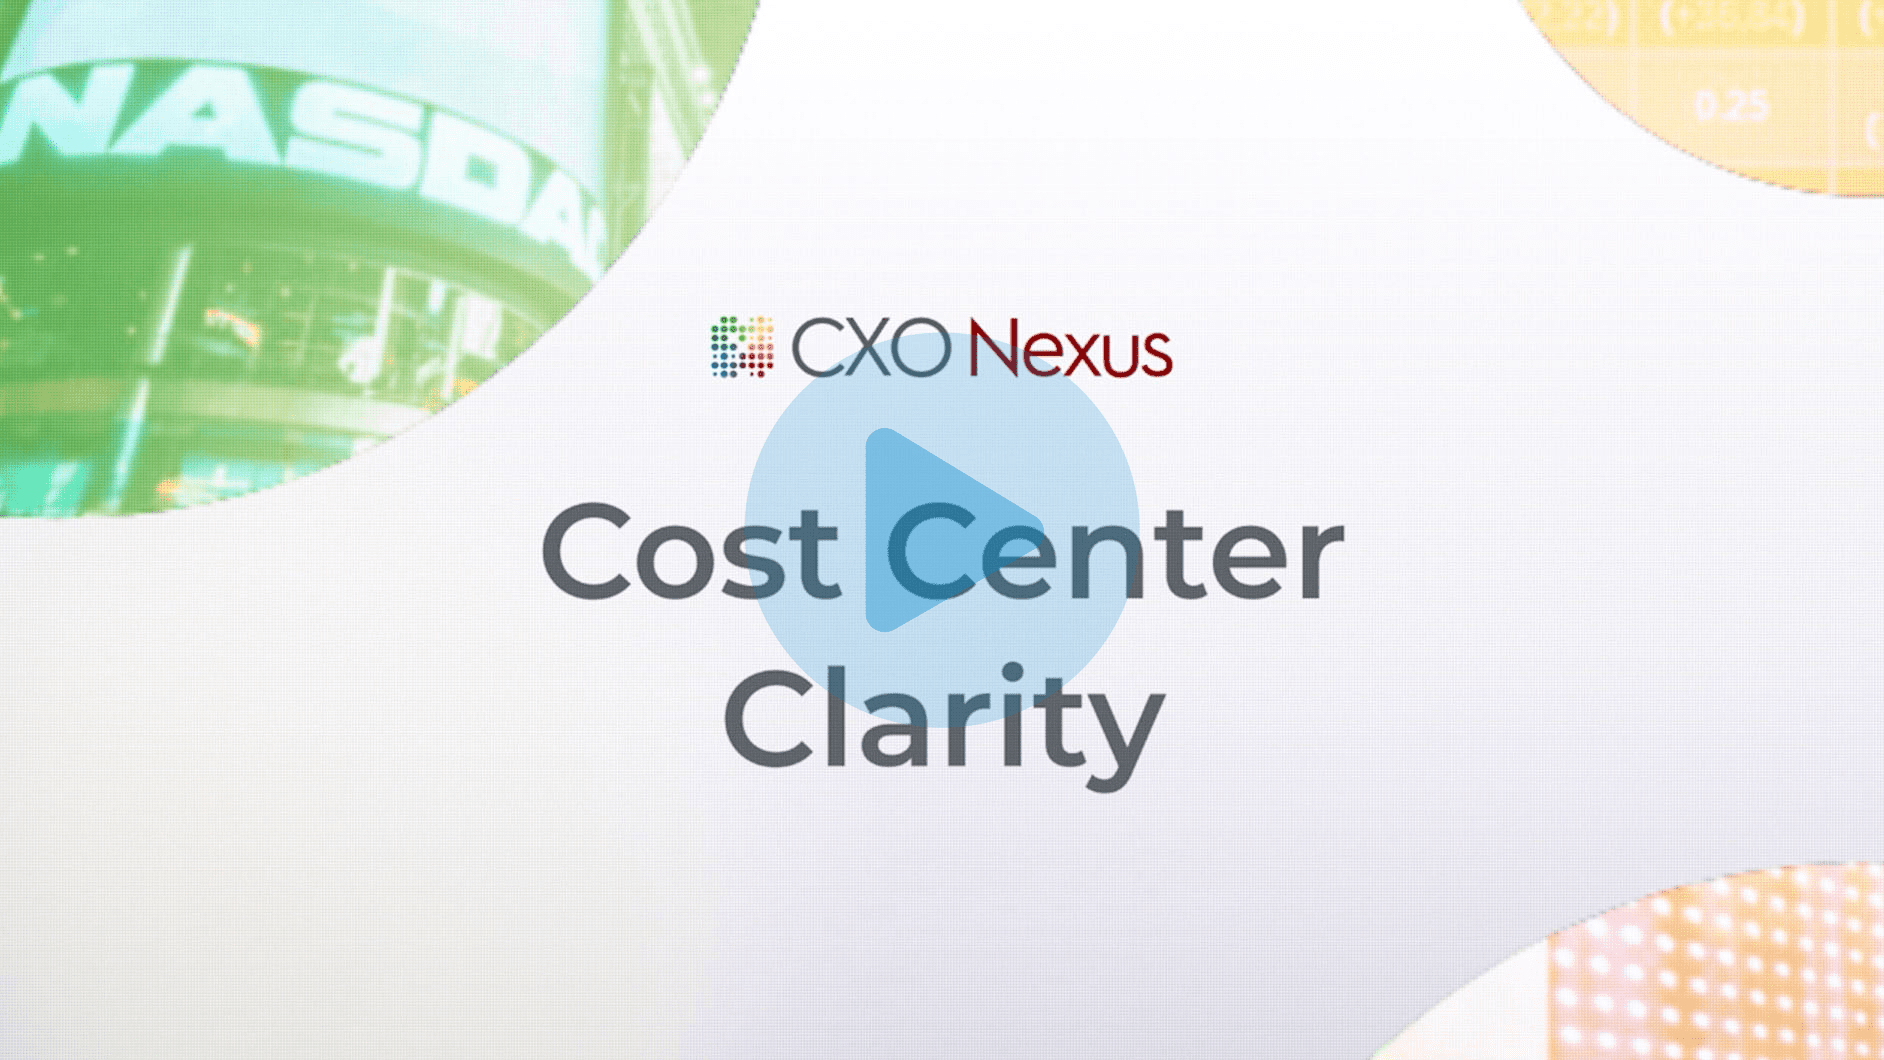 cost center clarity Use case video